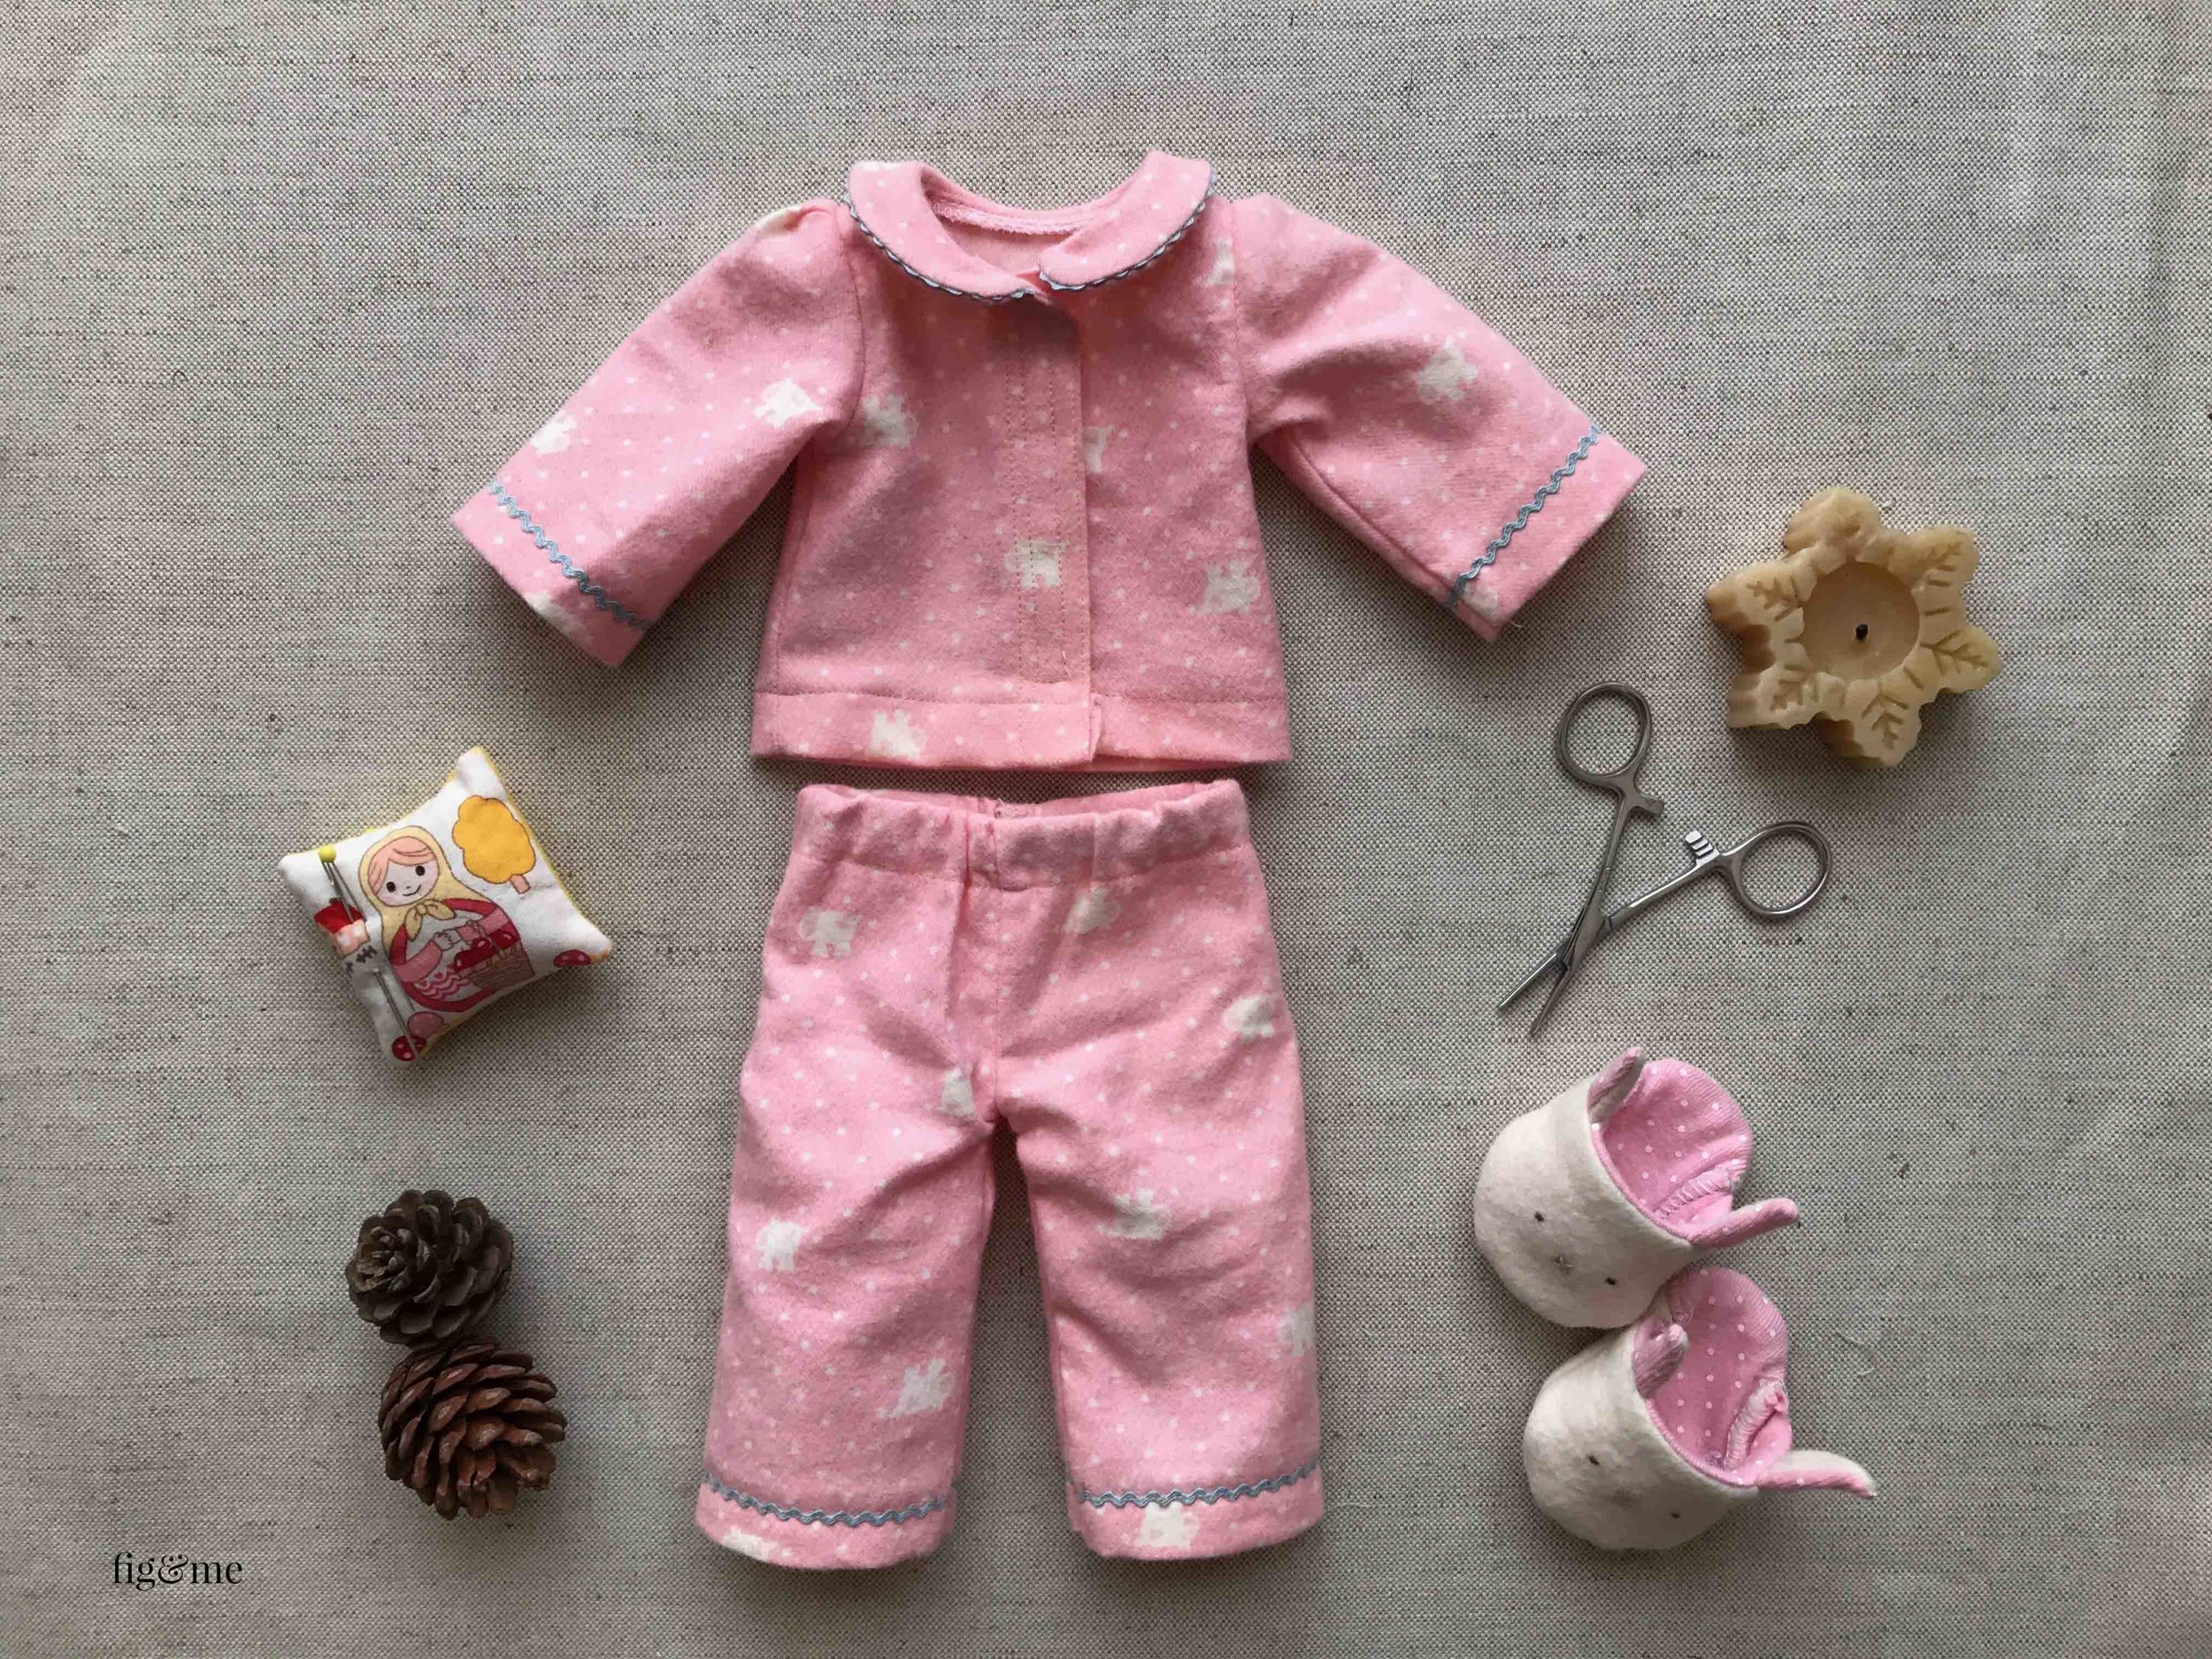 Both the JimJams and the Bunny Slippers patterns are now available. You can make a matching set of pyjamas and cozy slippers for your waldorf or natural fiber art doll. By fig and me. #dollclothing #sewingfordolls